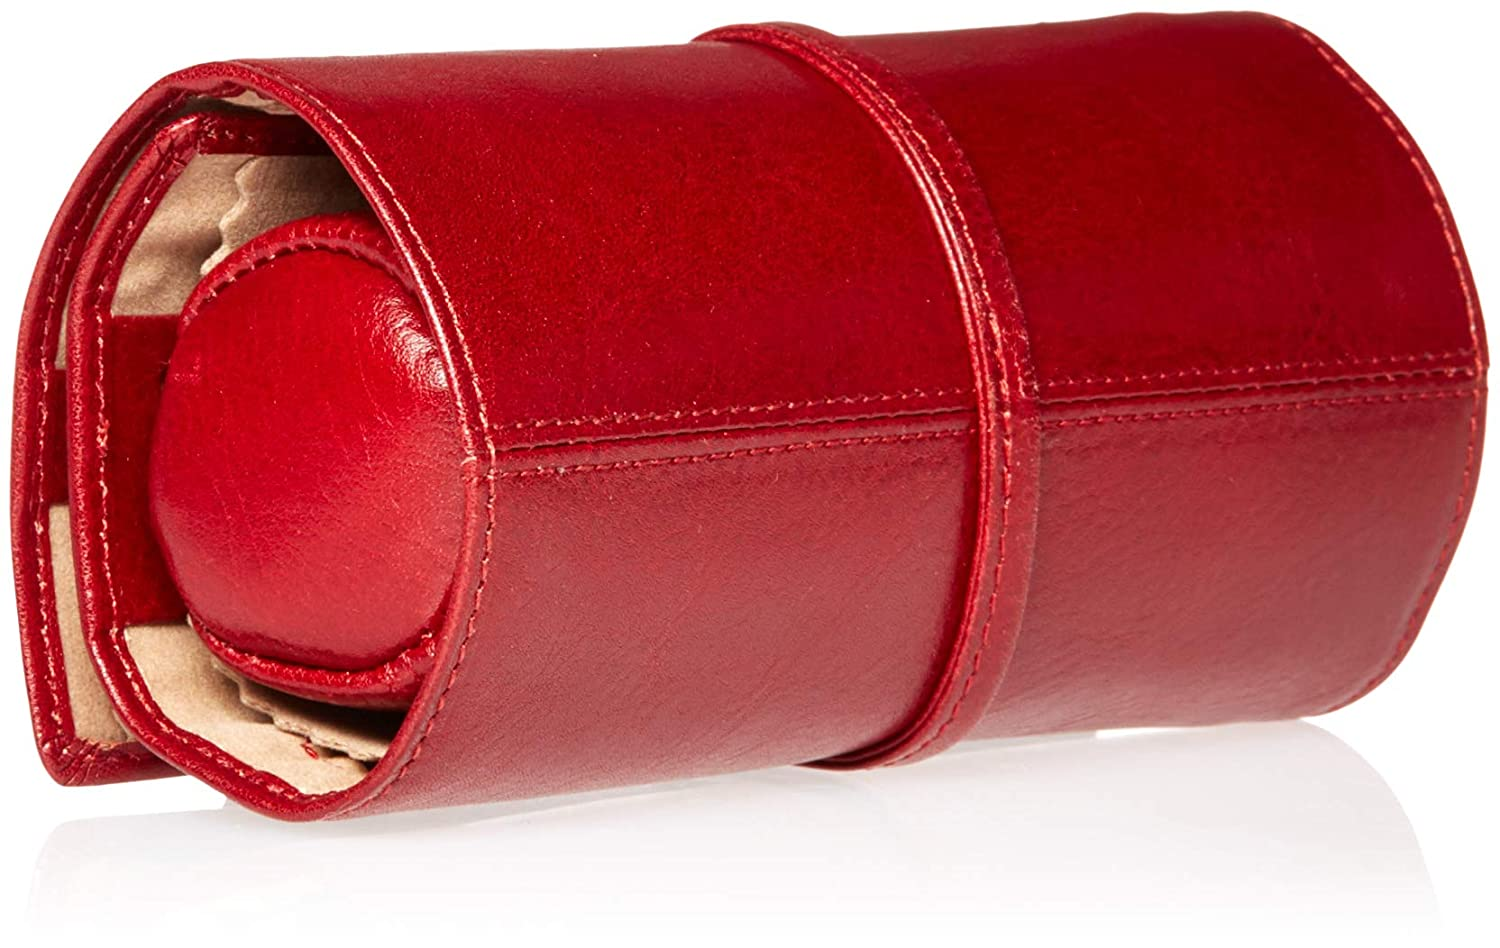 Tony Perotti Italian Bull Leather Grande Jewelry Roll Travel Organizer